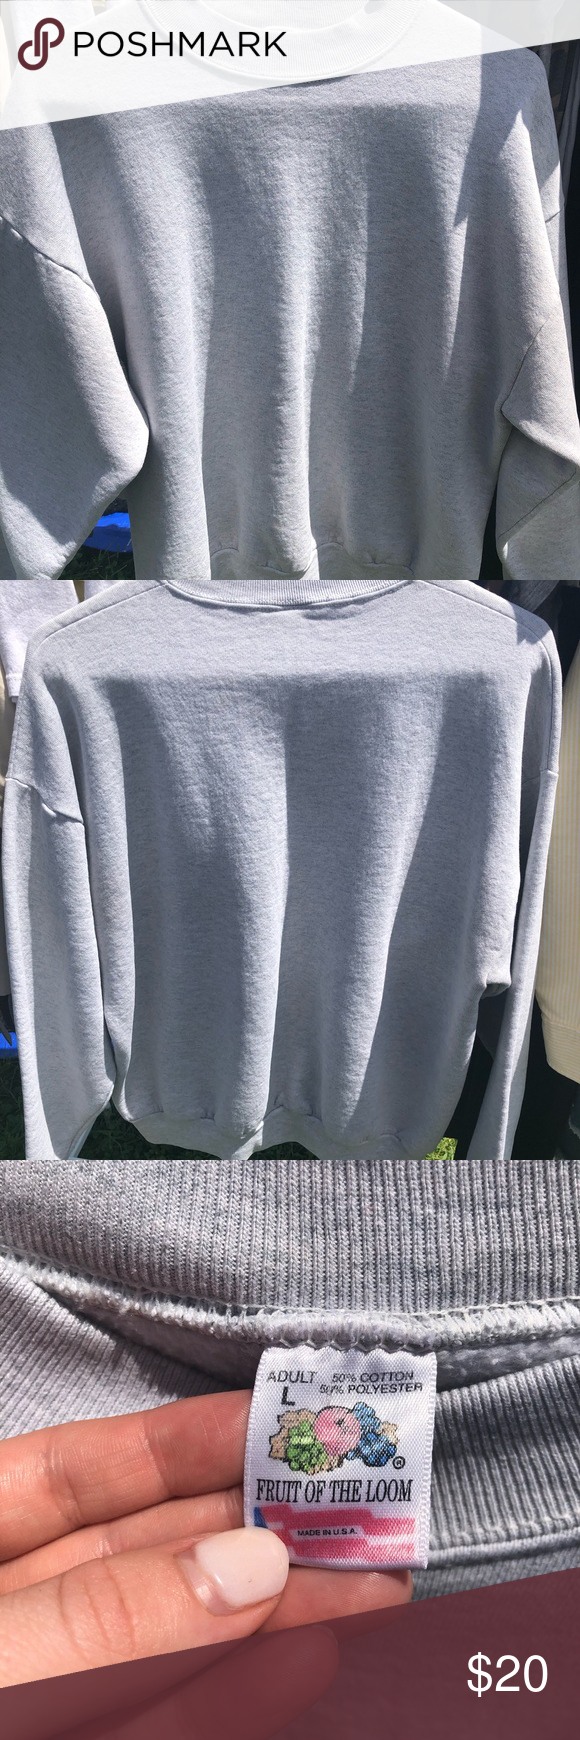 Vintage Fruit of The Loom Crewneck (With images) Fruit